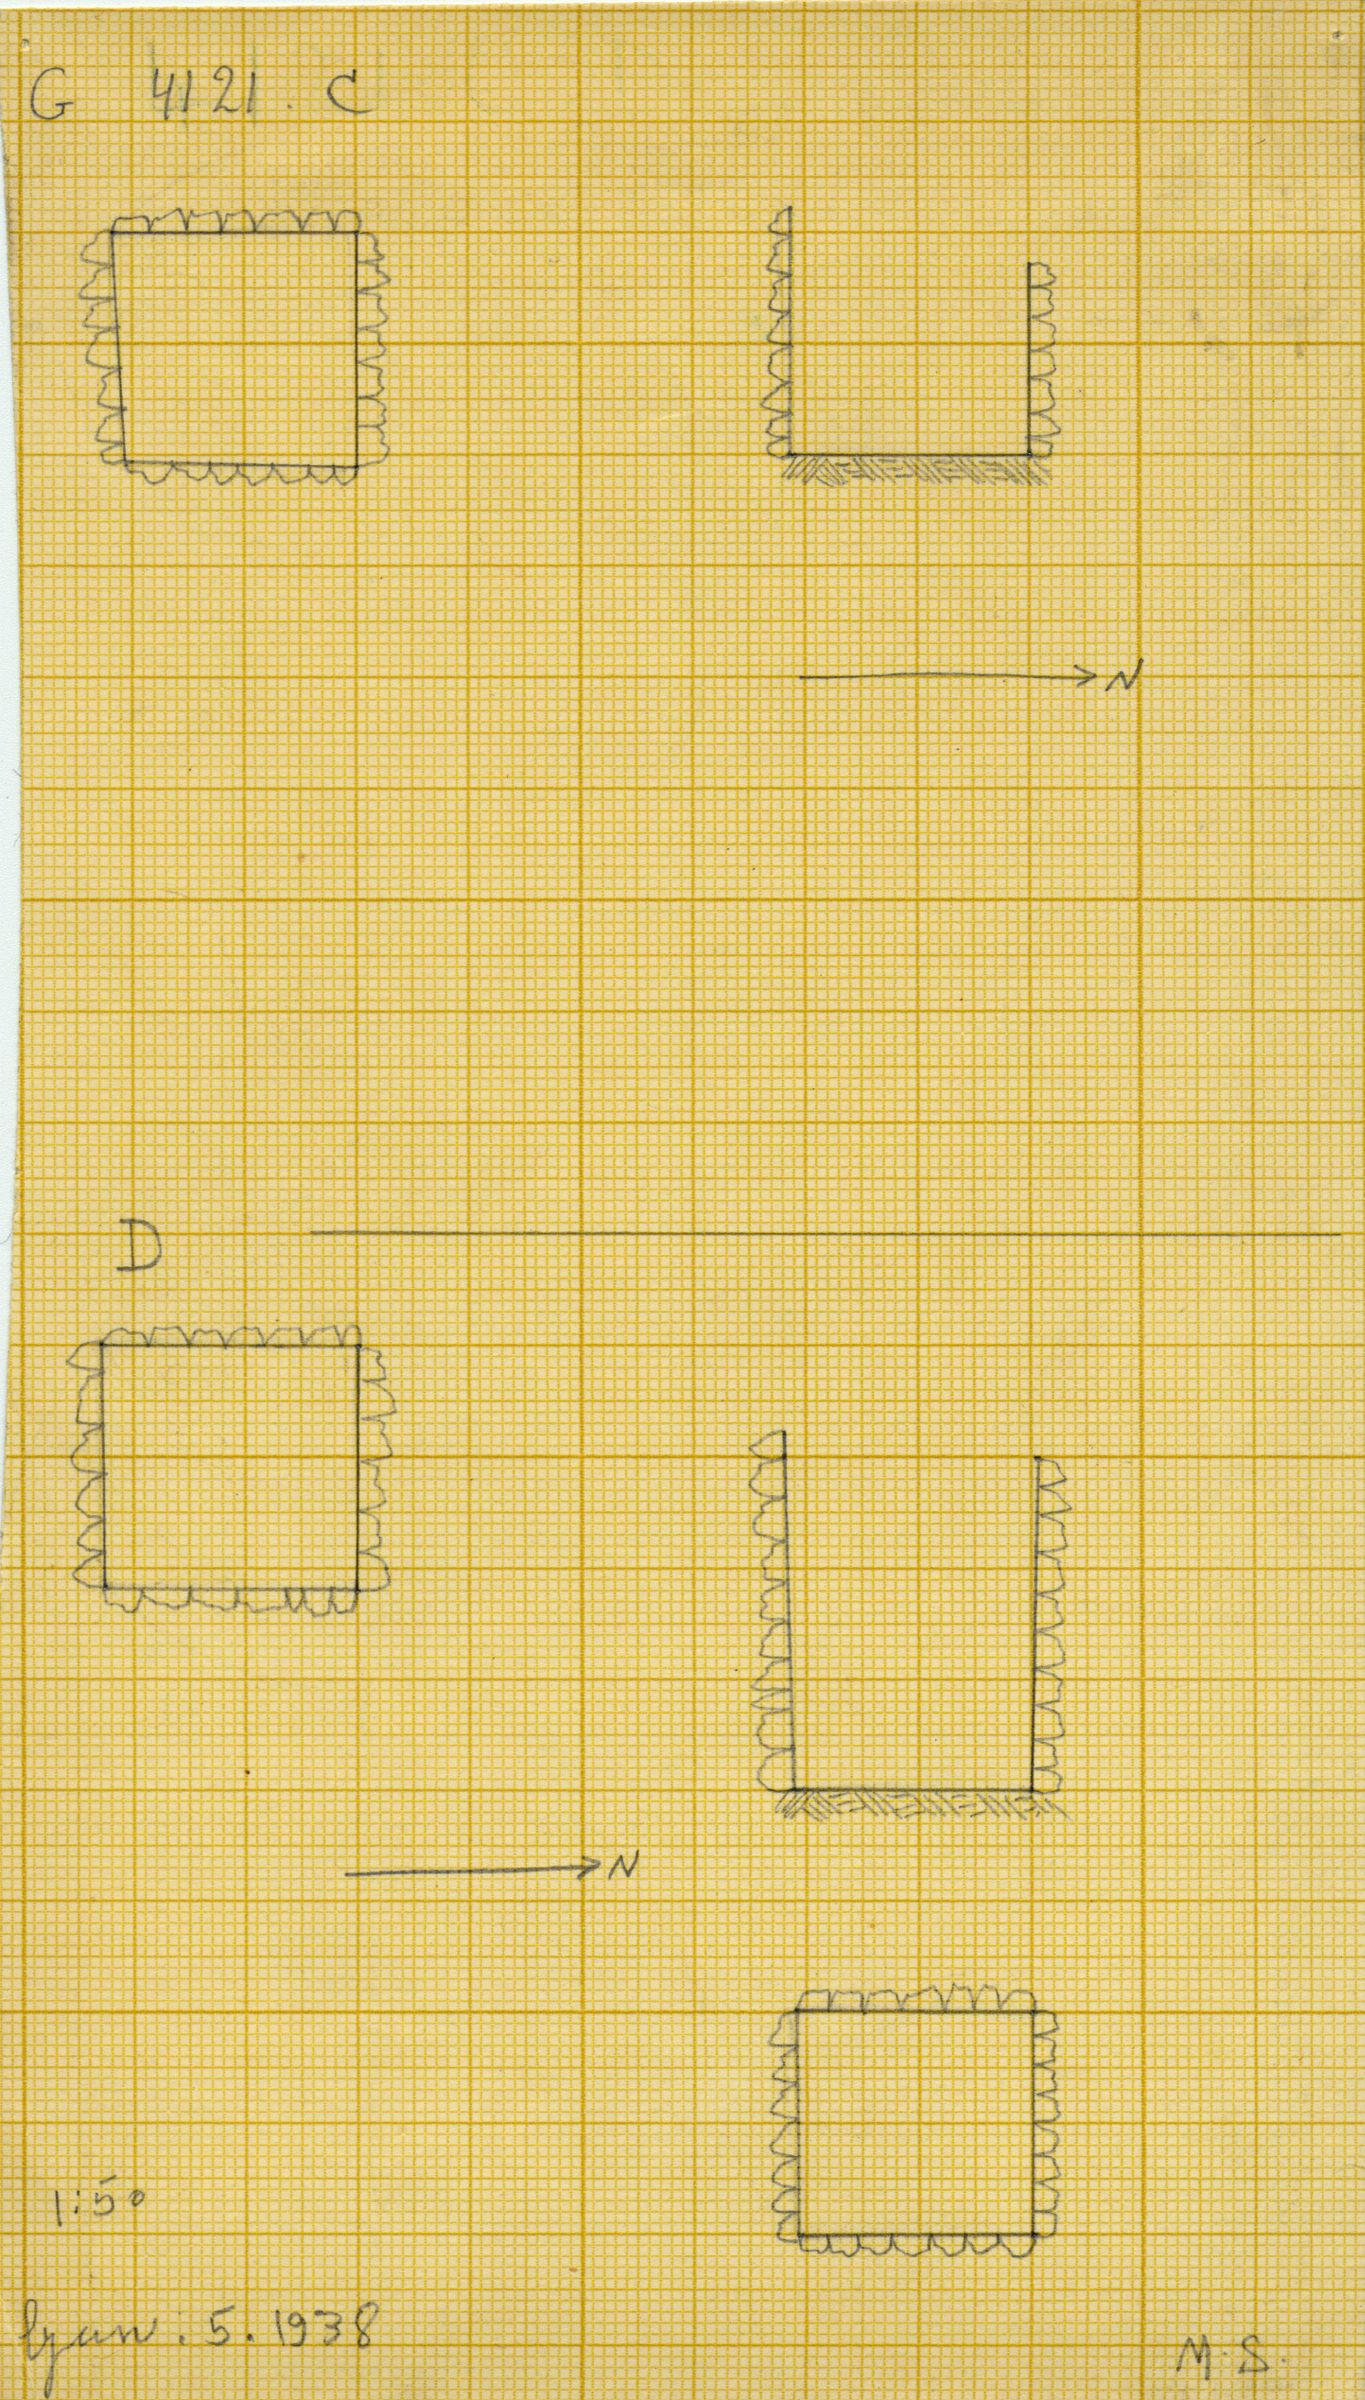 Maps and plans: G 4121, Shaft C and D